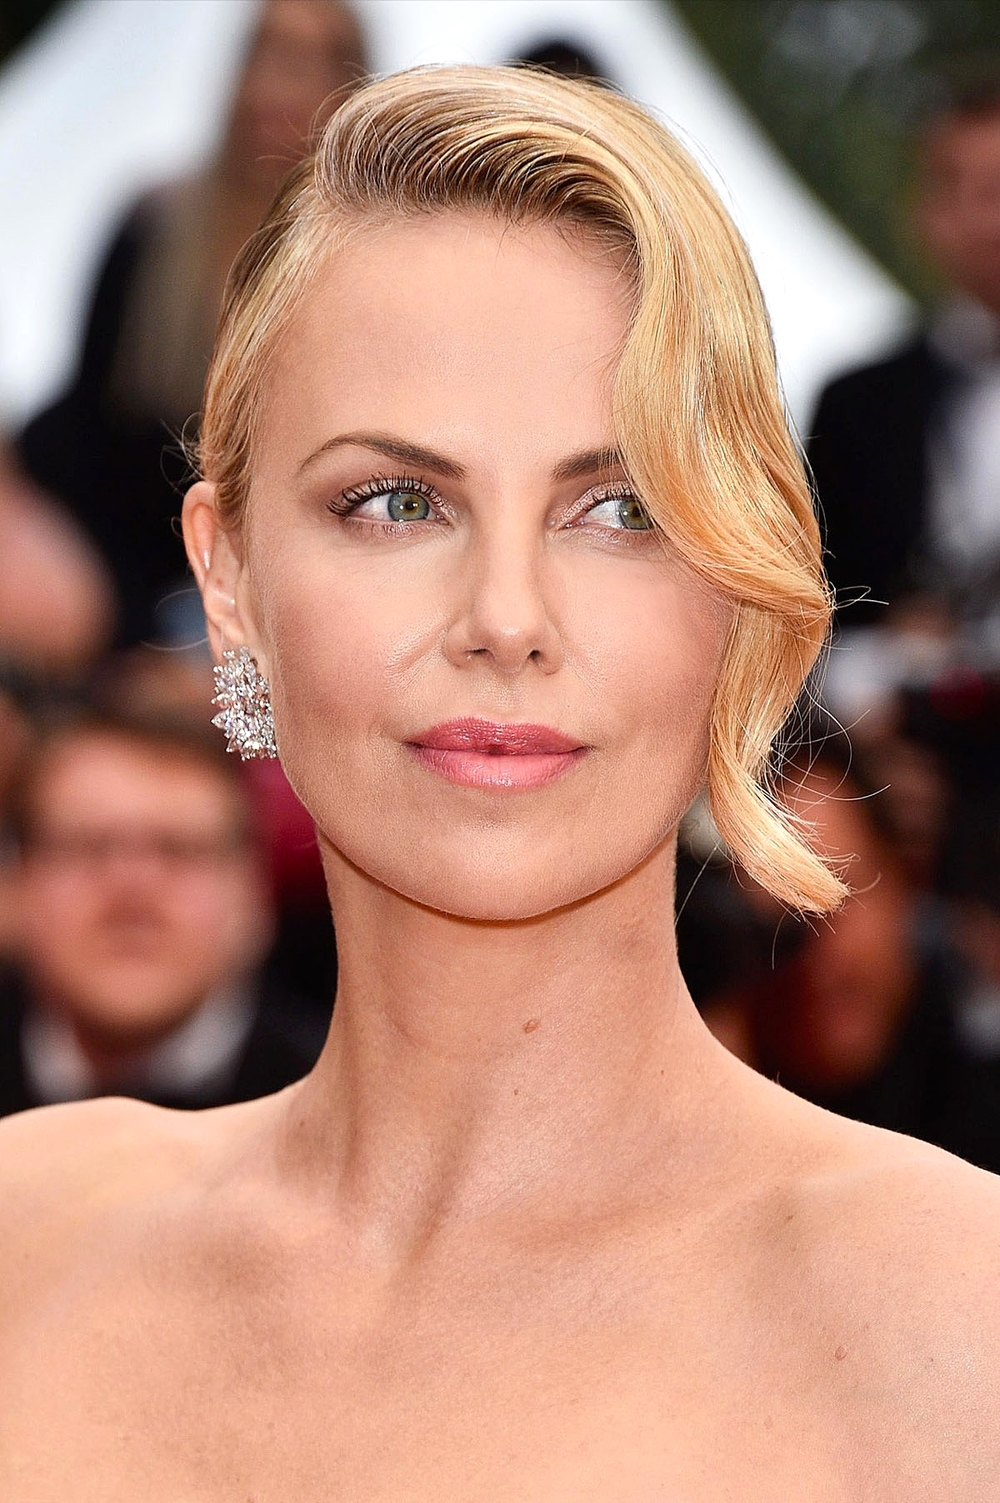 Charlize Theron at the 'Mad Max: Fury Road' premiere               Photo by Getty